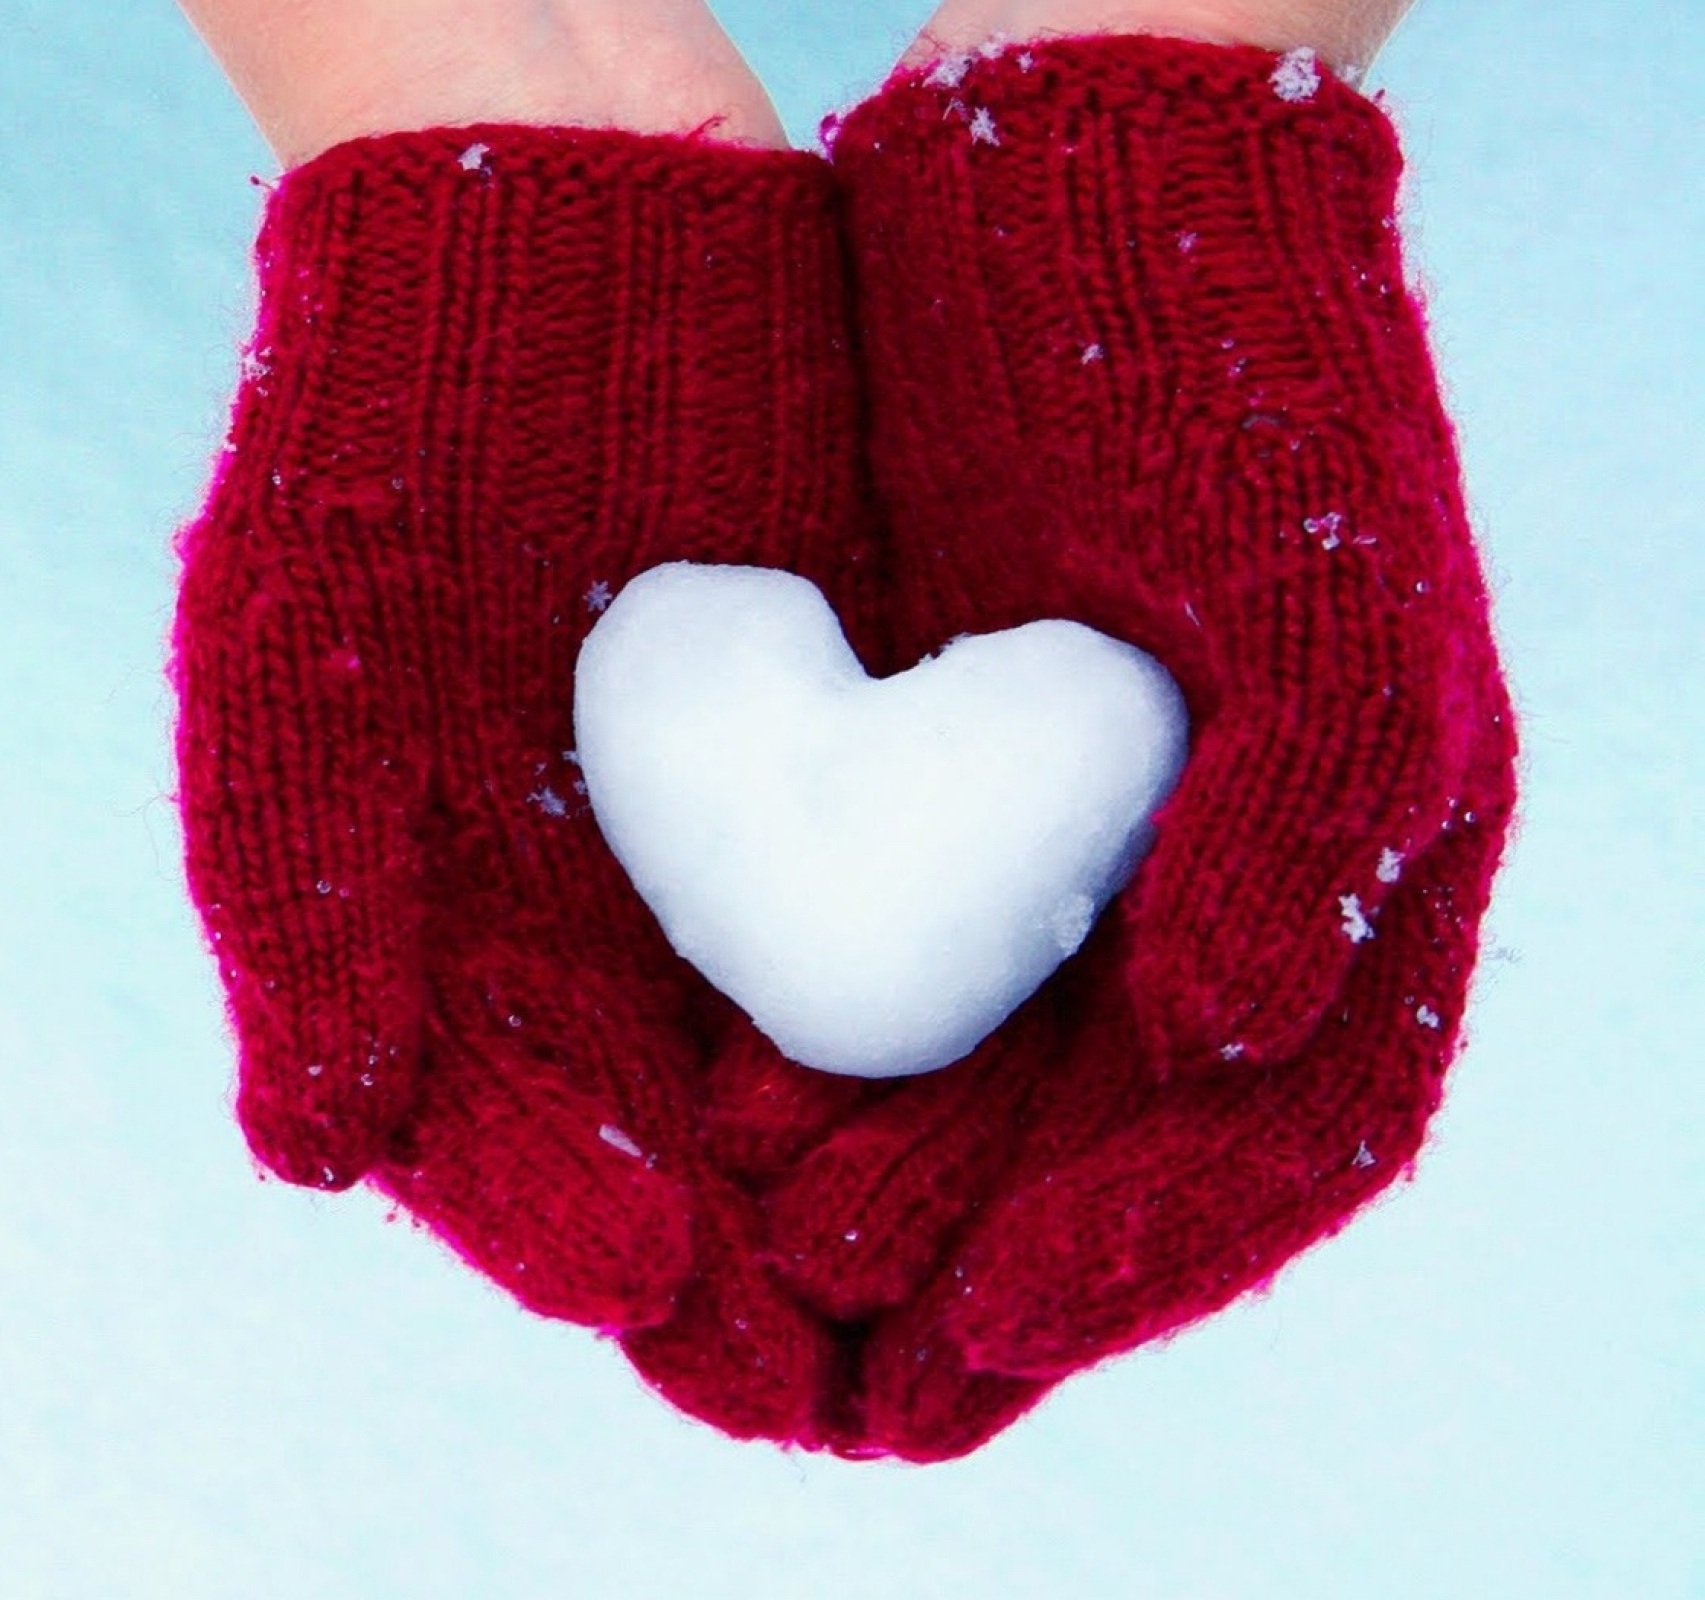 The hands of a woman wearing red mittens and holding a snow in the shape of a heart